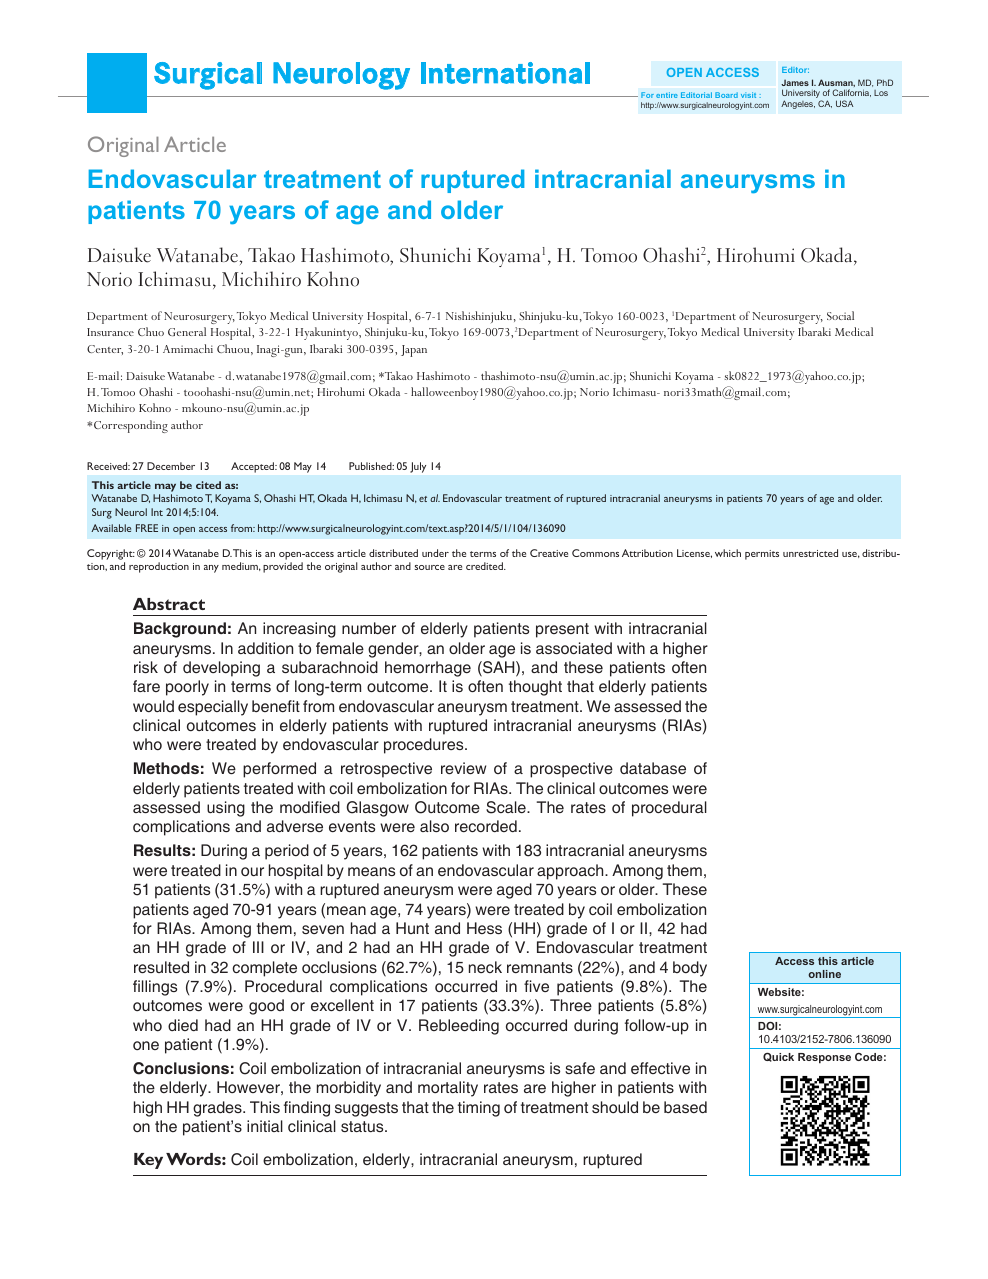 Endovascular treatment of ruptured intracranial aneurysms in